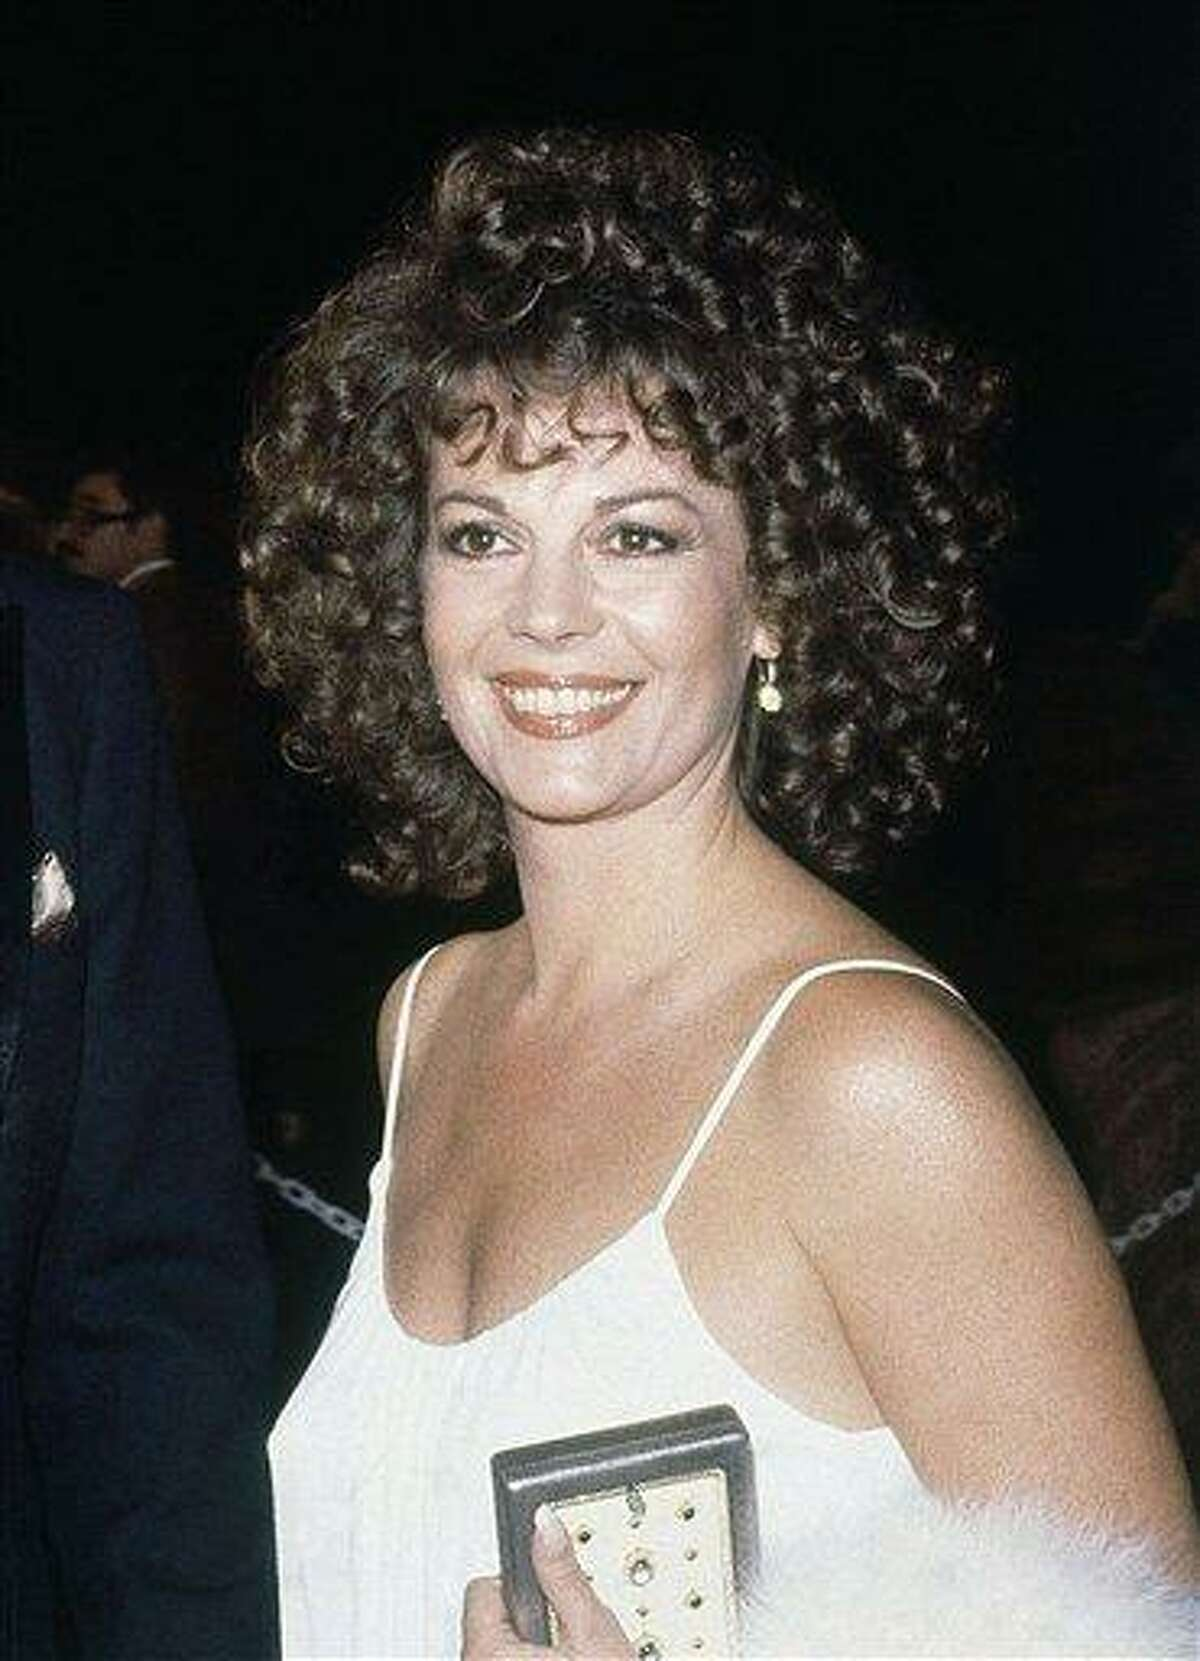 In this April 9, 1979 file photo, actress Natalie Wood is shown at the 51st Annual Academy Awards in Los Angeles. Los Angeles sheriff's homicide detectives are taking another look at Wood's 1981 drowning death based on new information, officials announced Thursday, Nov. 17, 2011. (AP Photo, file)